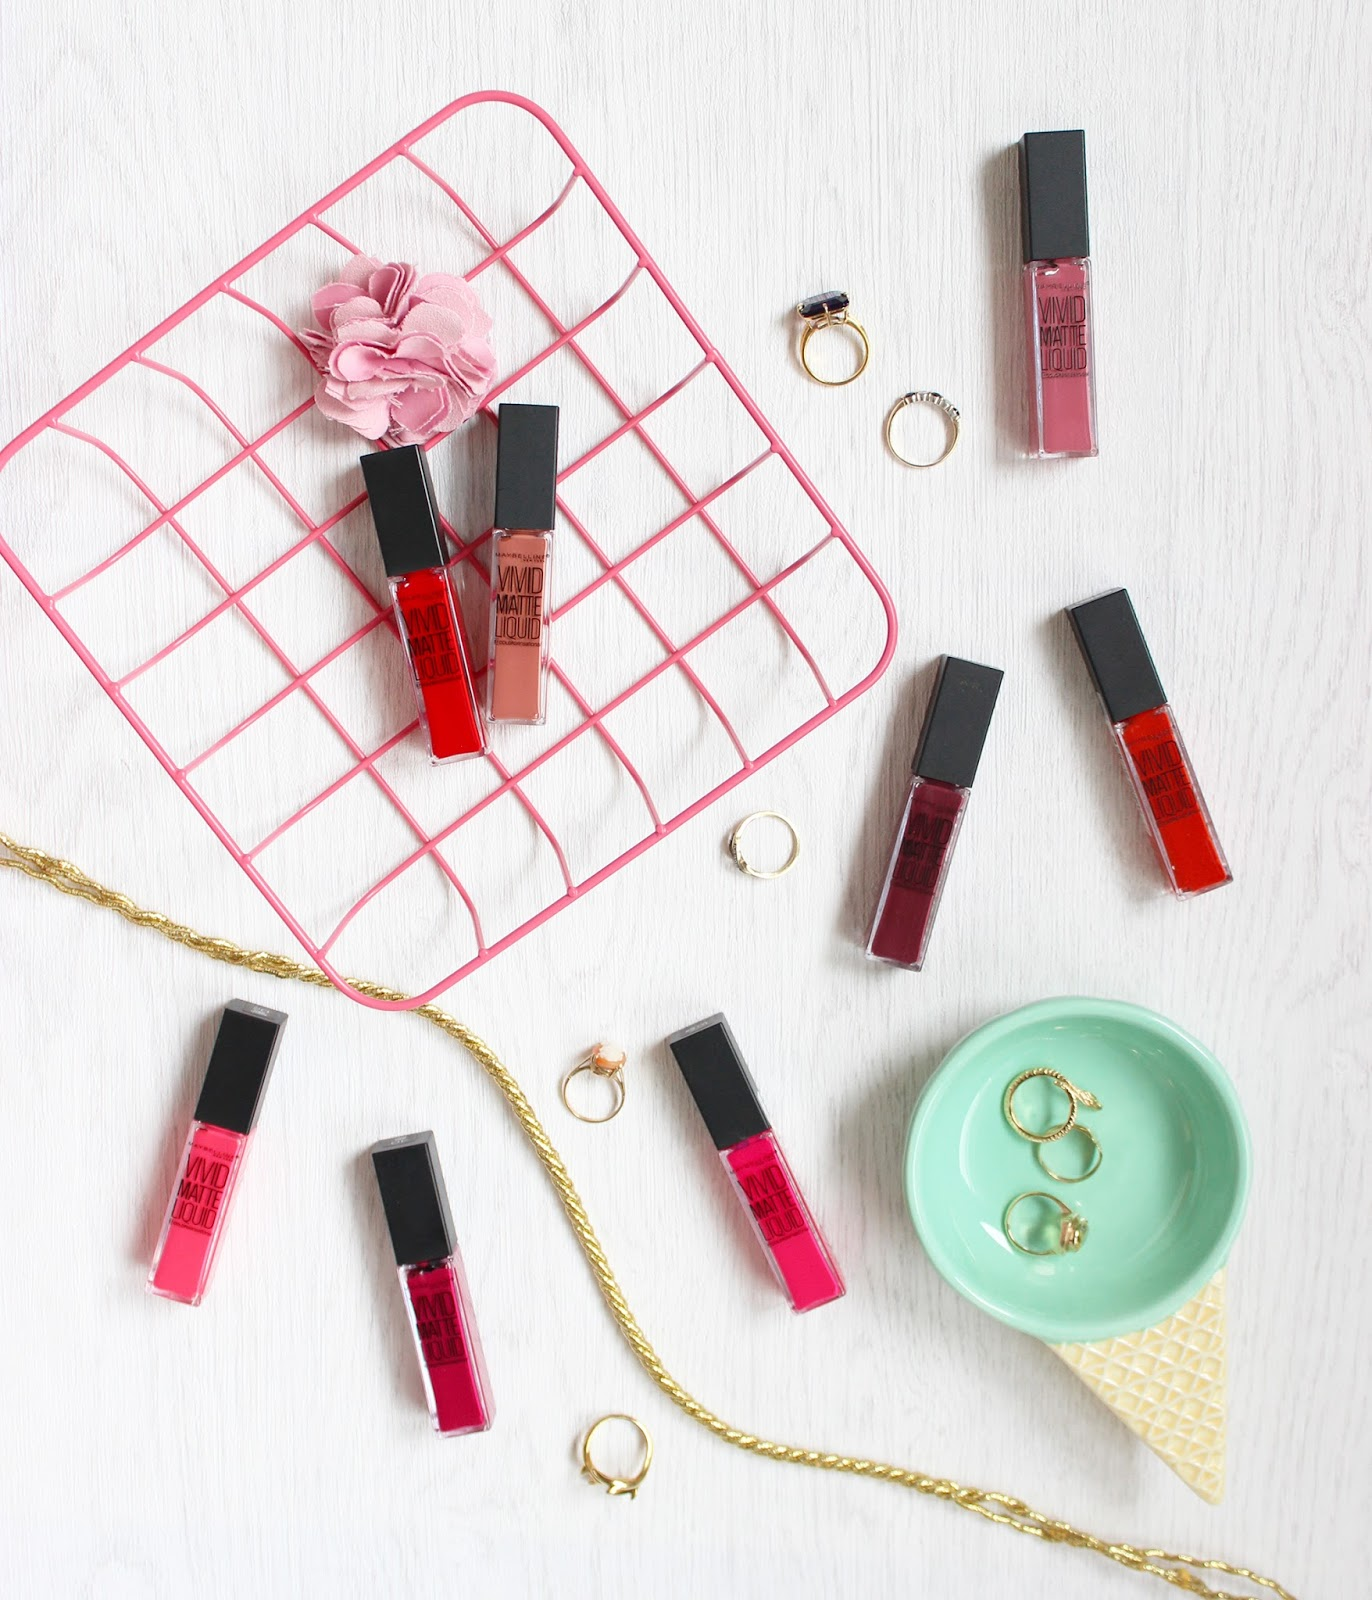 Maybelline Vivid Matte Liquid lipstick review and swatches